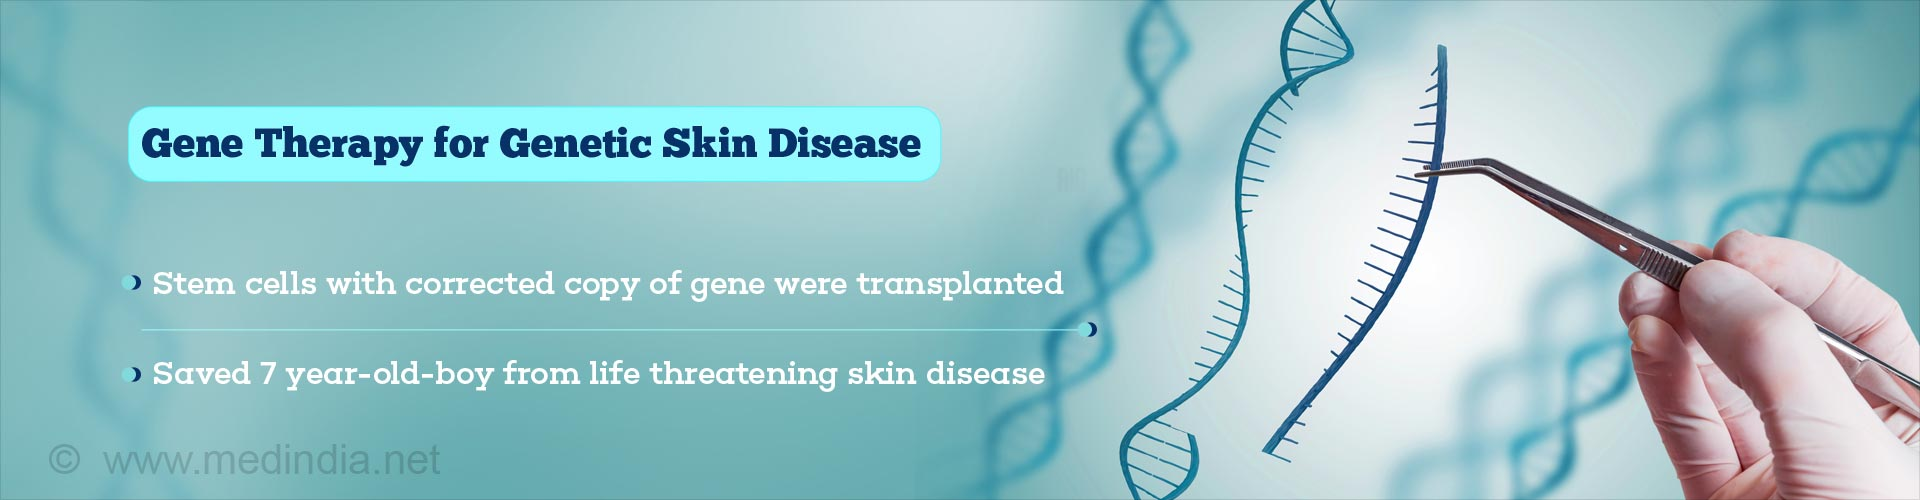 gene therapy for genetic skin disease